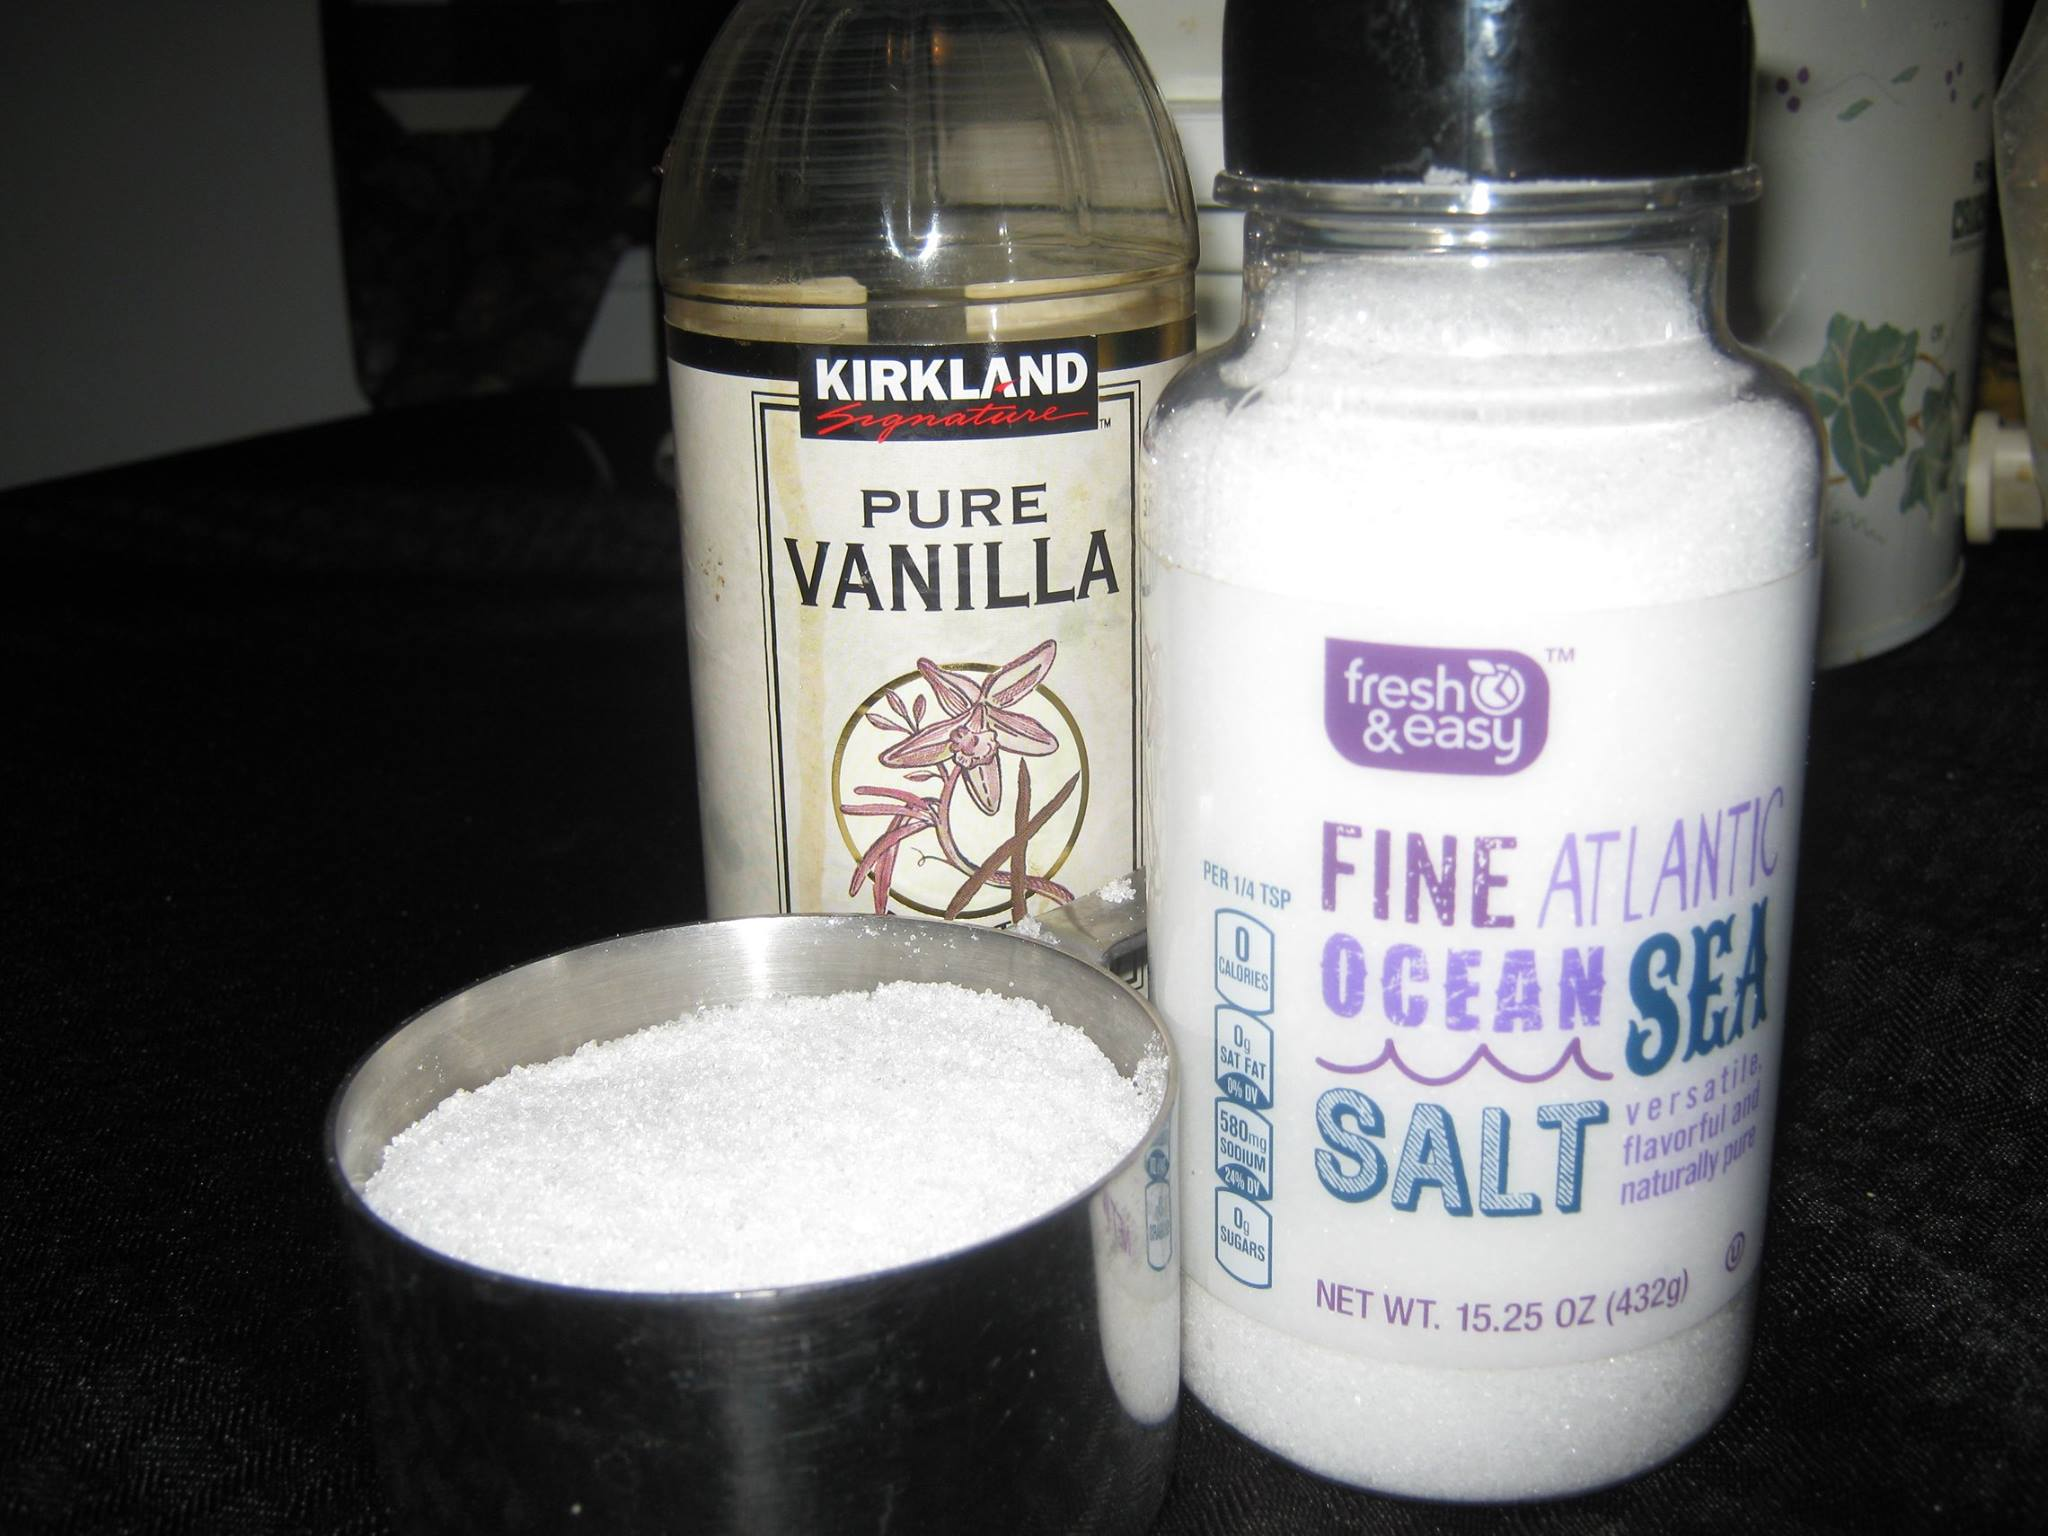 Salt, xylitol and vanilla